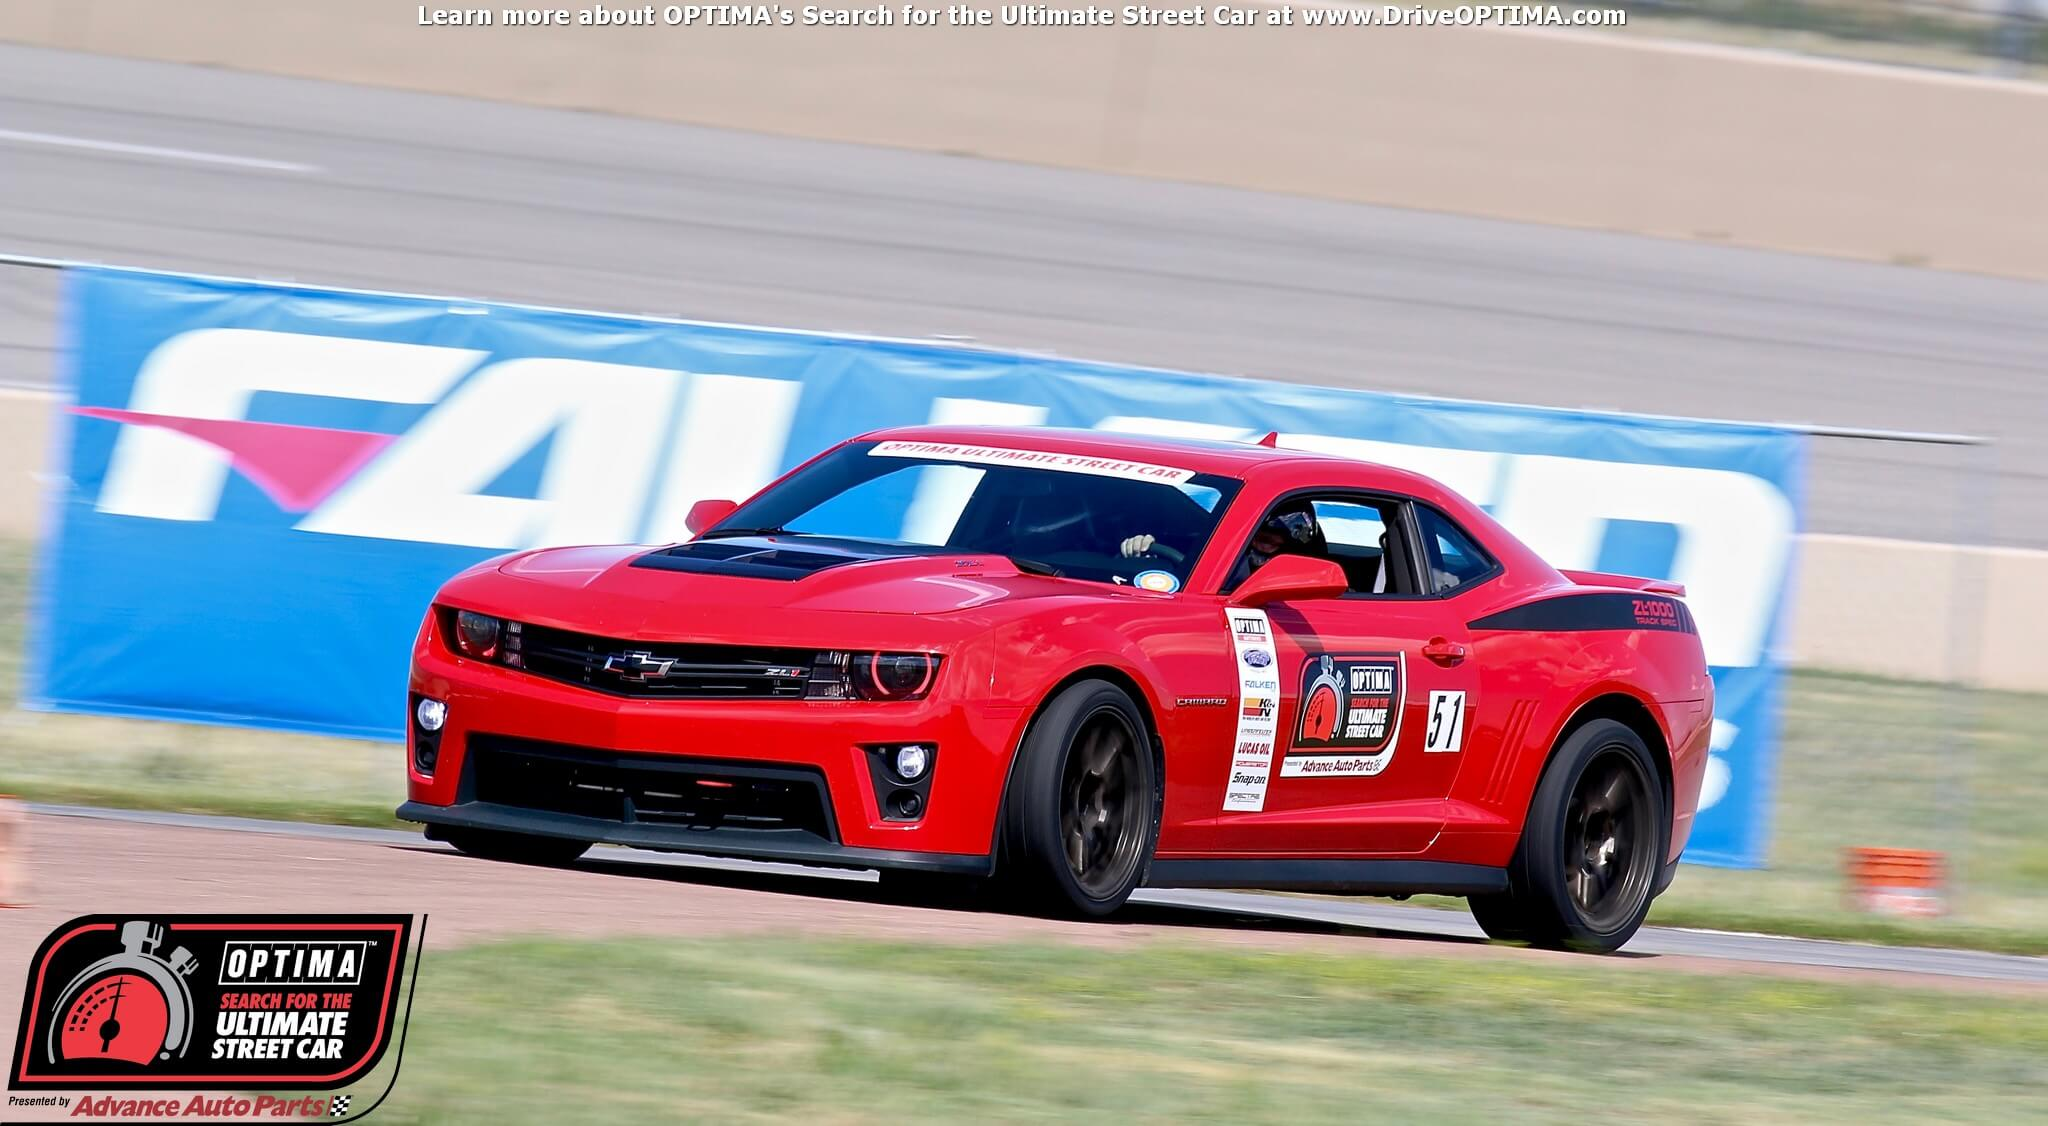 Joel-Gonzales-2013-Chevrolet-Camaro-DriveOPTIMA-PPIR-2016-Dave-Liddle_12